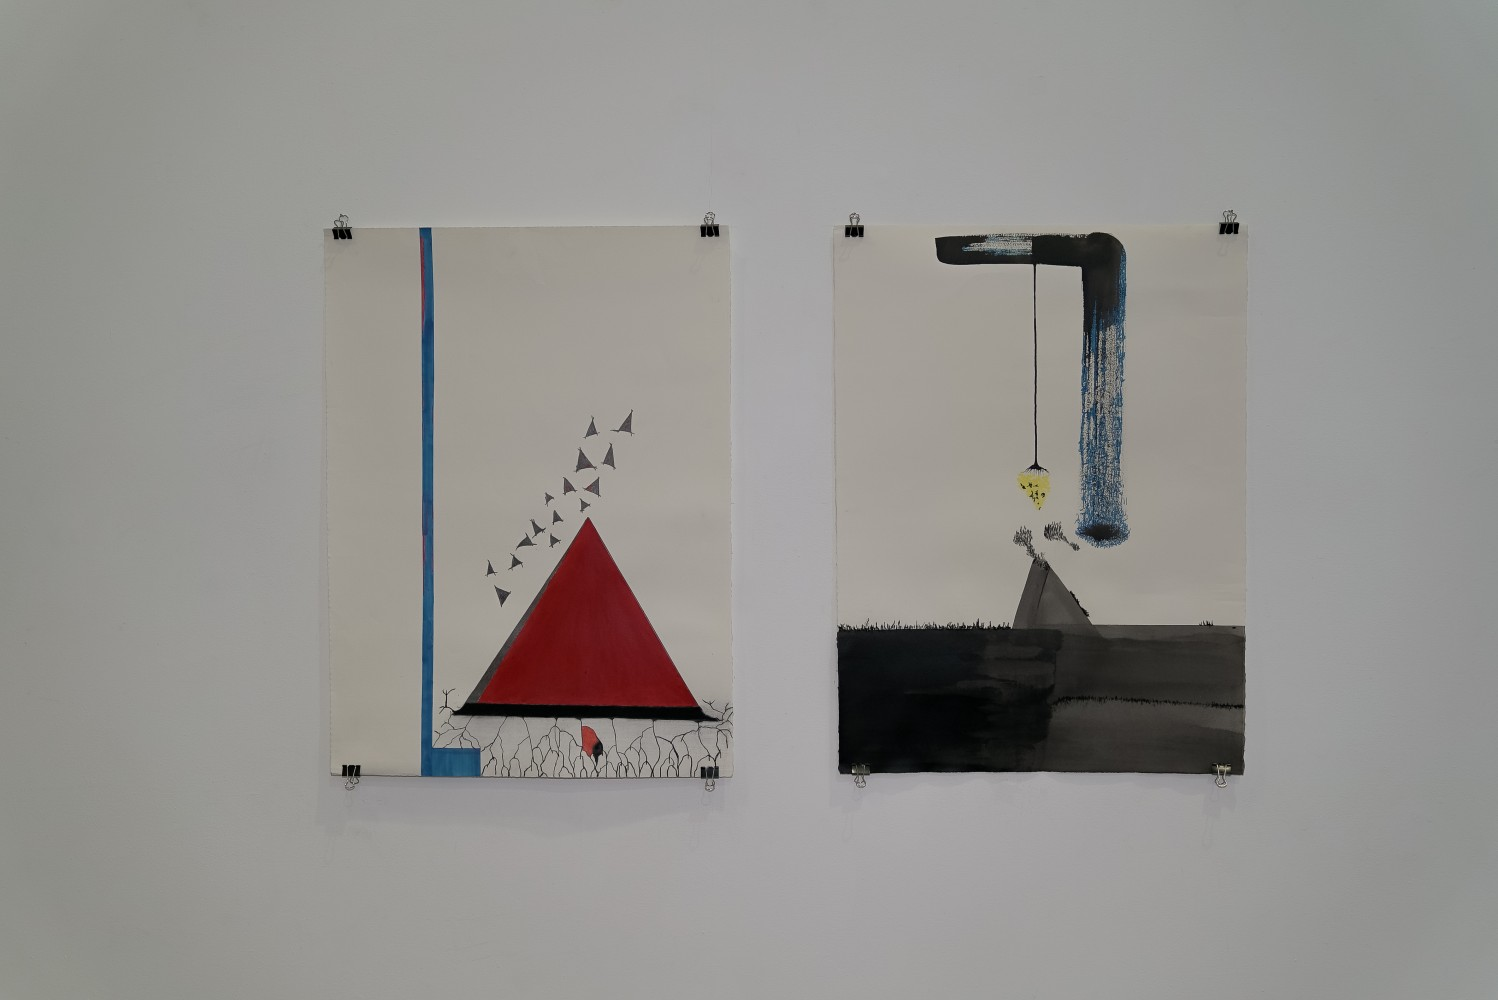 an image of two drawings on paper hung with pins and small crocodile clips from each of their four corners on a white wall. The drawings are of made of rectangles and triangles in black, red, blue and yellow of different sizes against white paper.